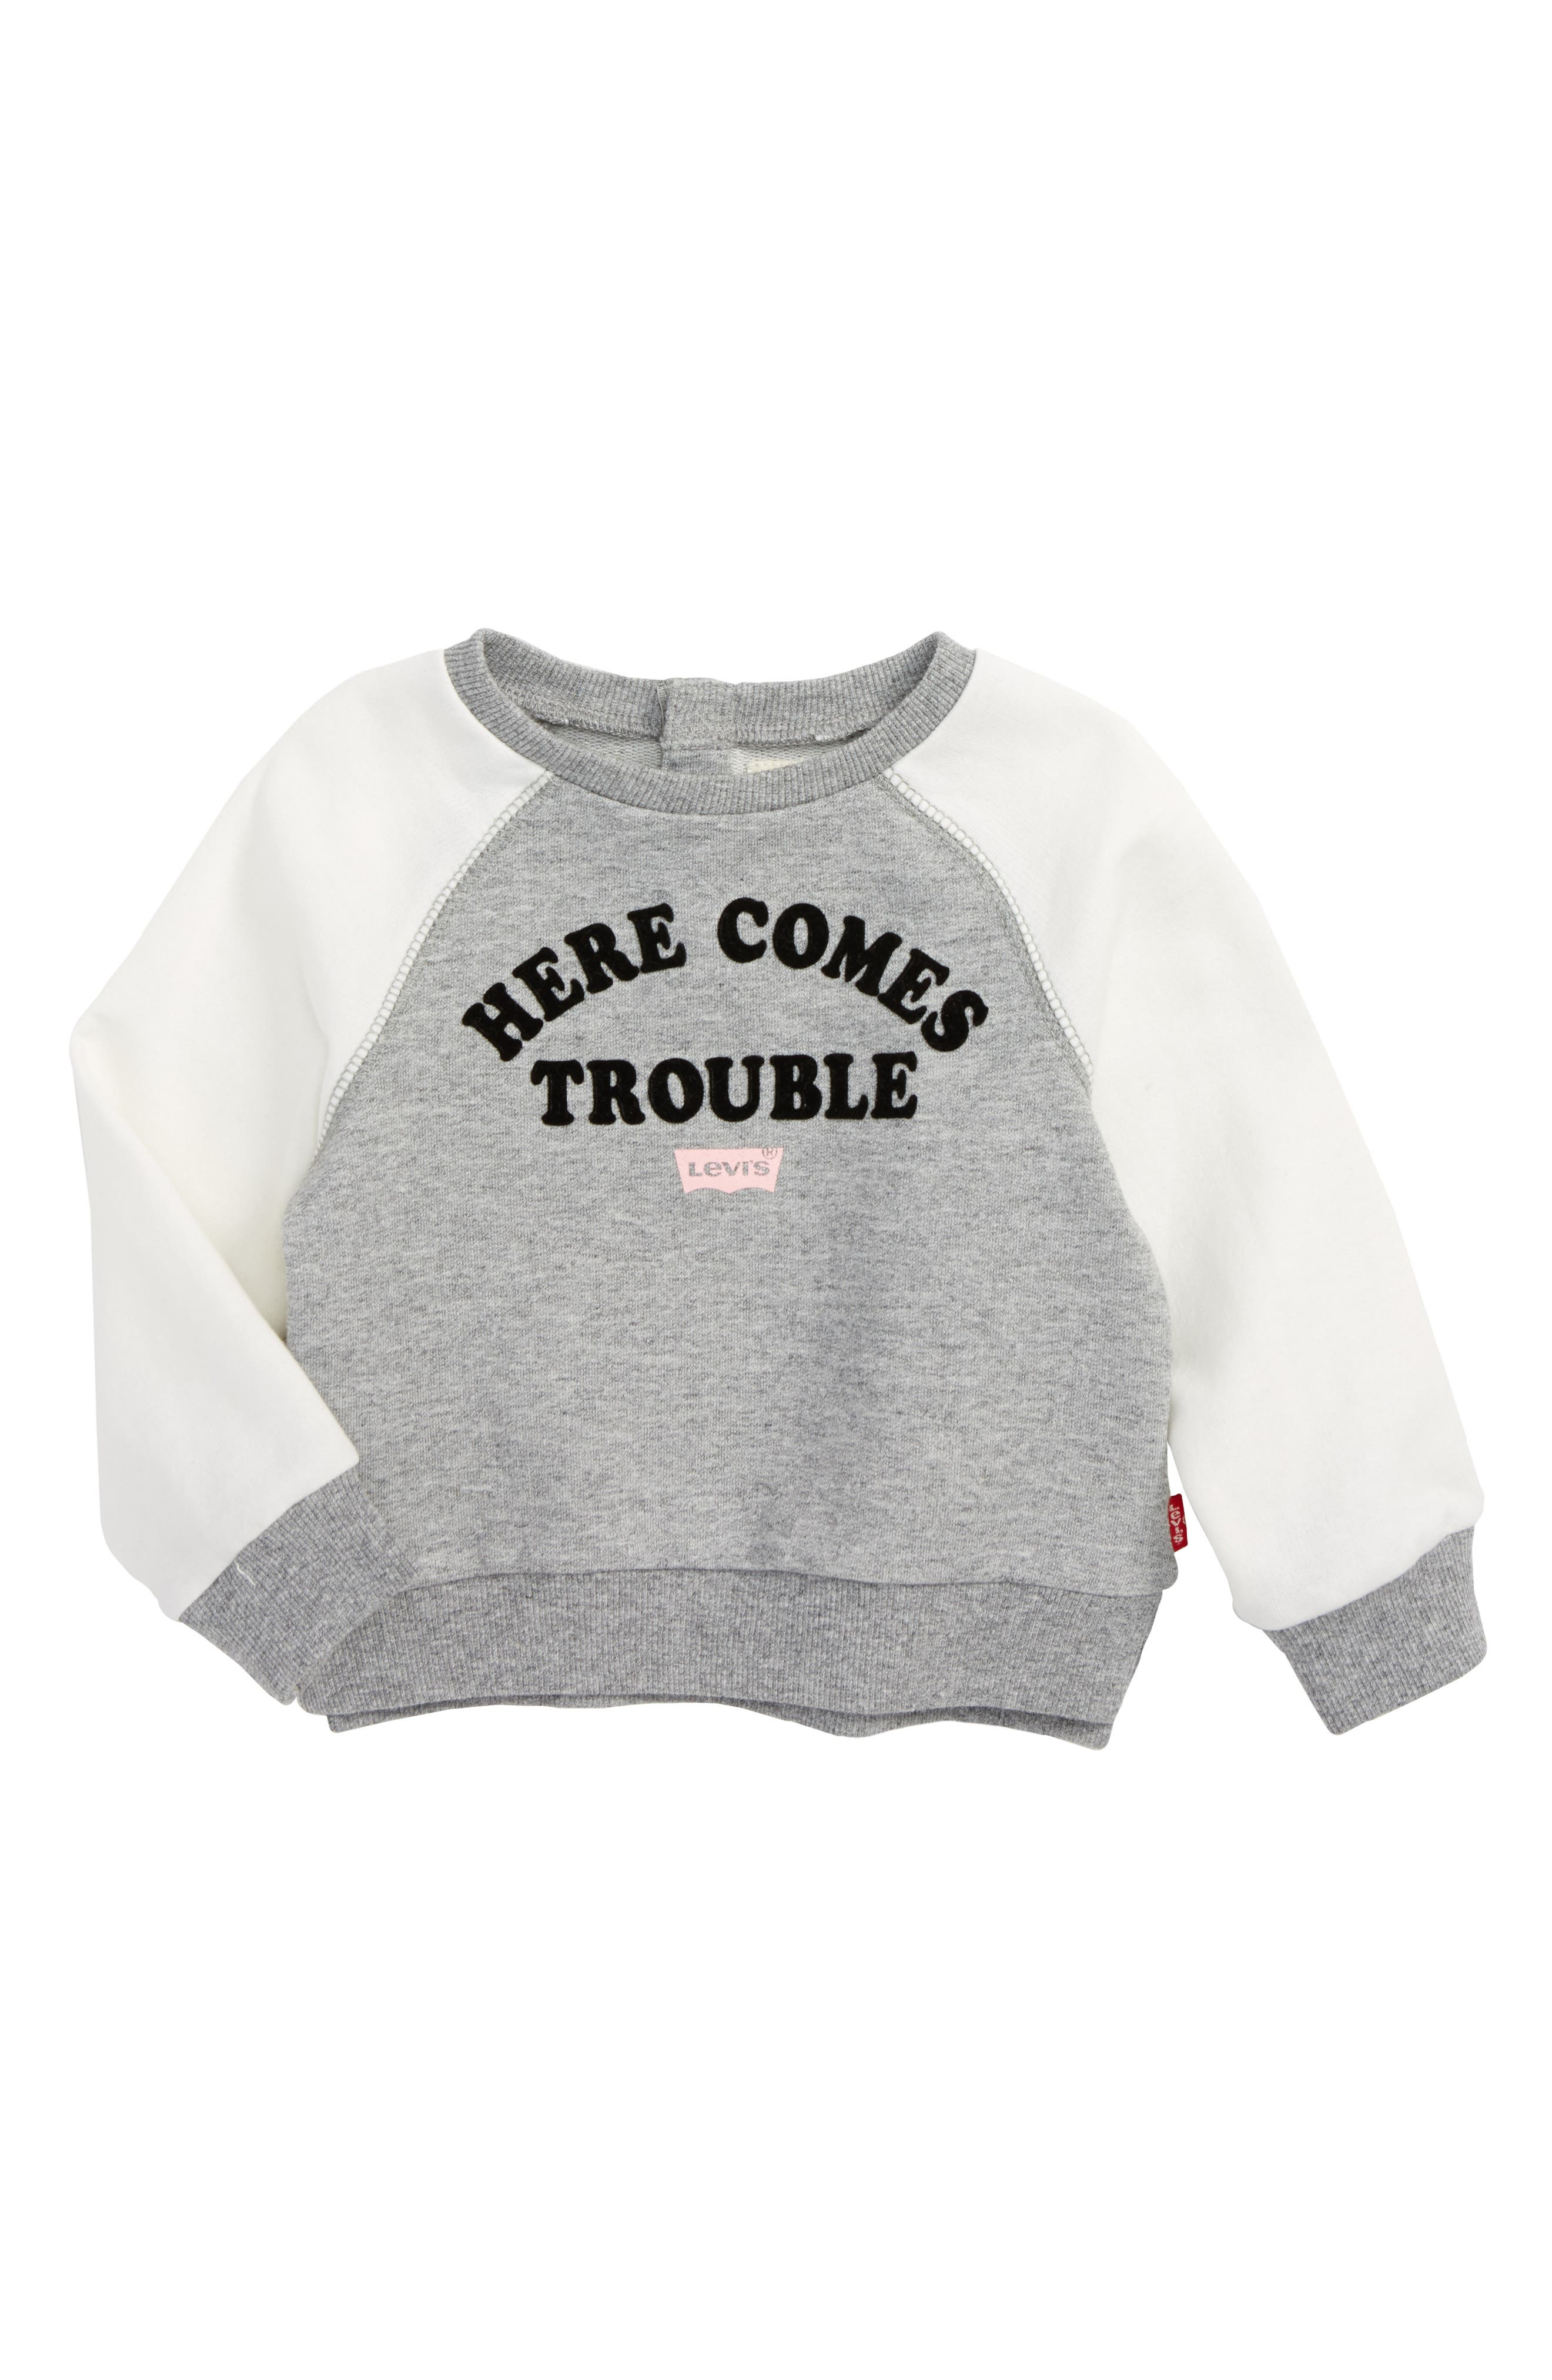 Main Image - Levi's® Here Comes Trouble Graphic Tee (Baby Girls)